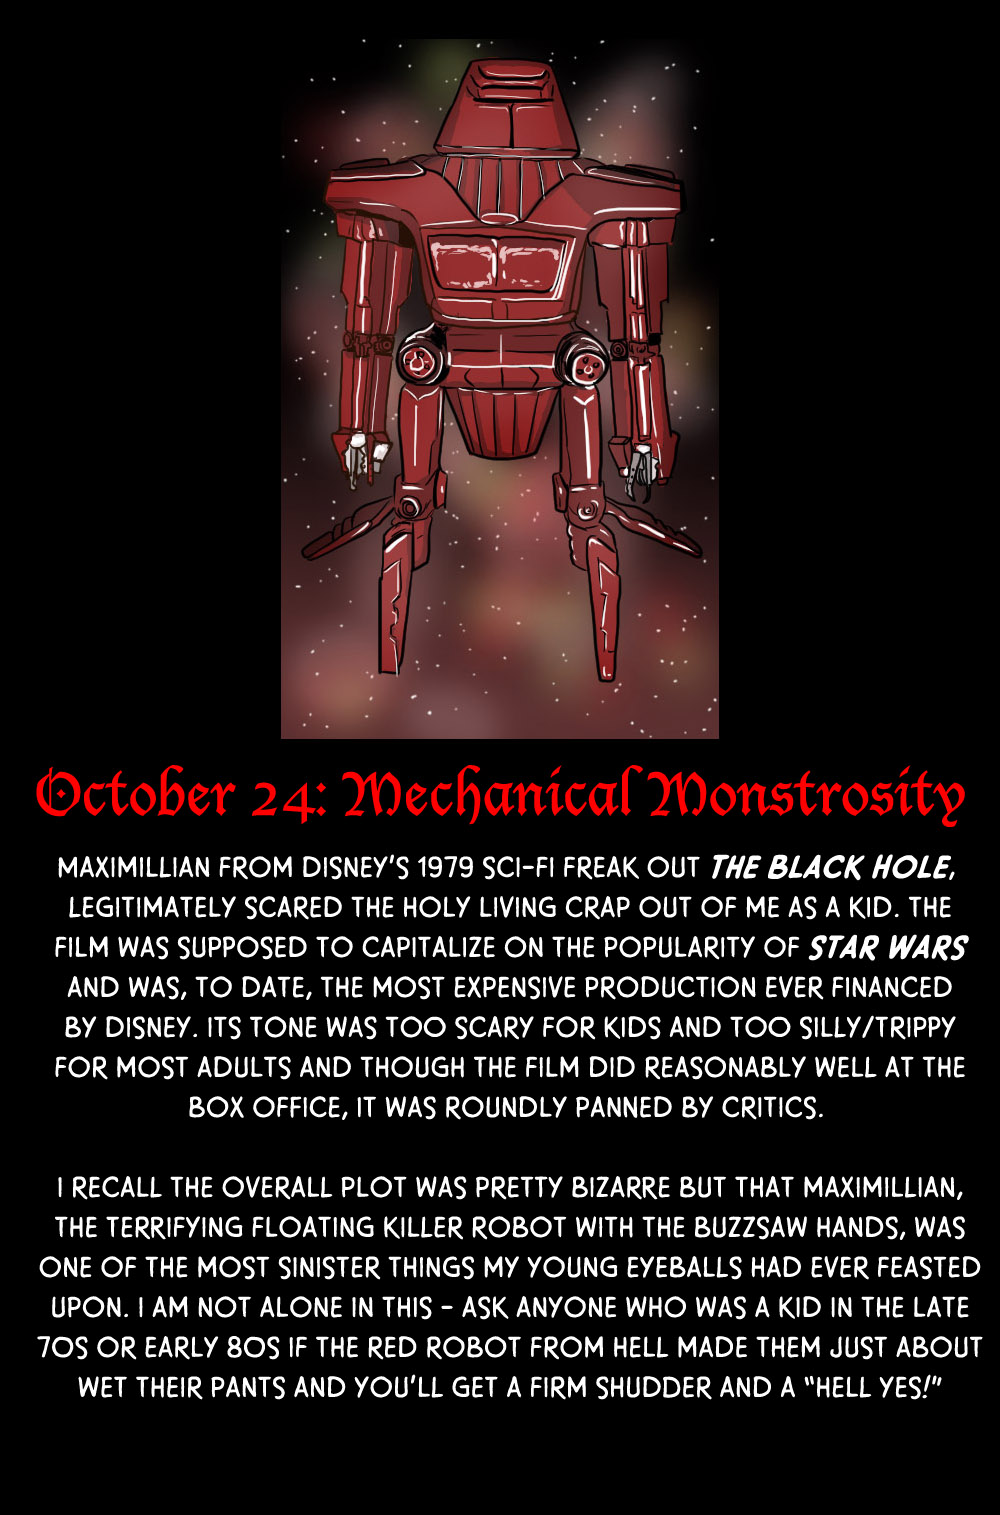 October 24: Mechanical Monstrosity (feat. Maximillian)